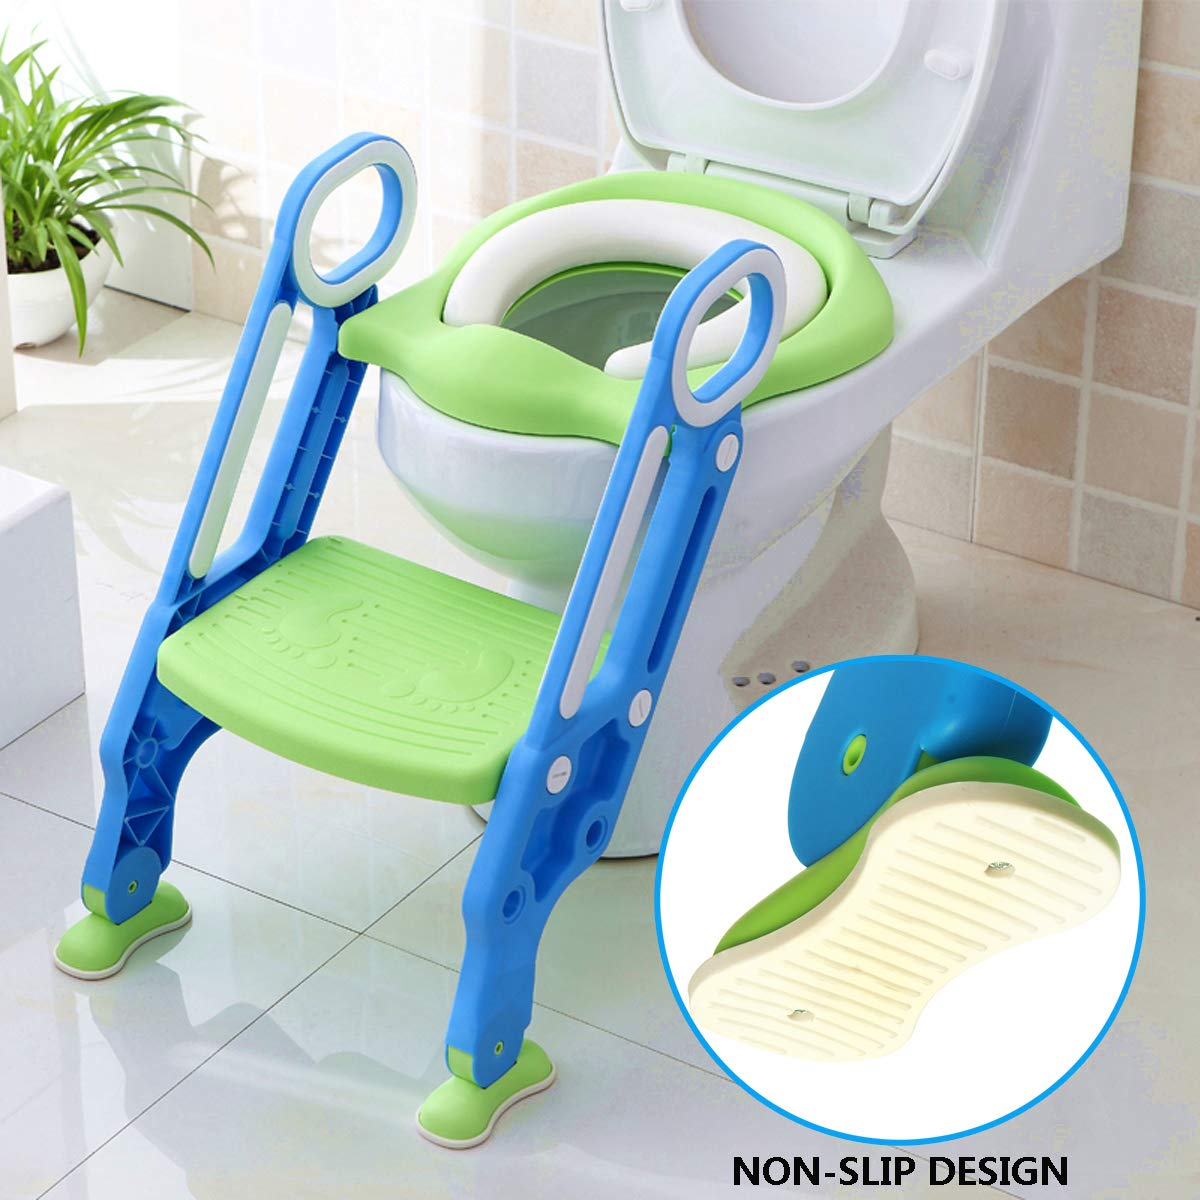 KingSo Children Potty Toilet Trainer Seat with Sturdy & Non-Slip Step Stool Ladder, Adjustable Toddler Toilet Seat for Boys and Girls by KingSo